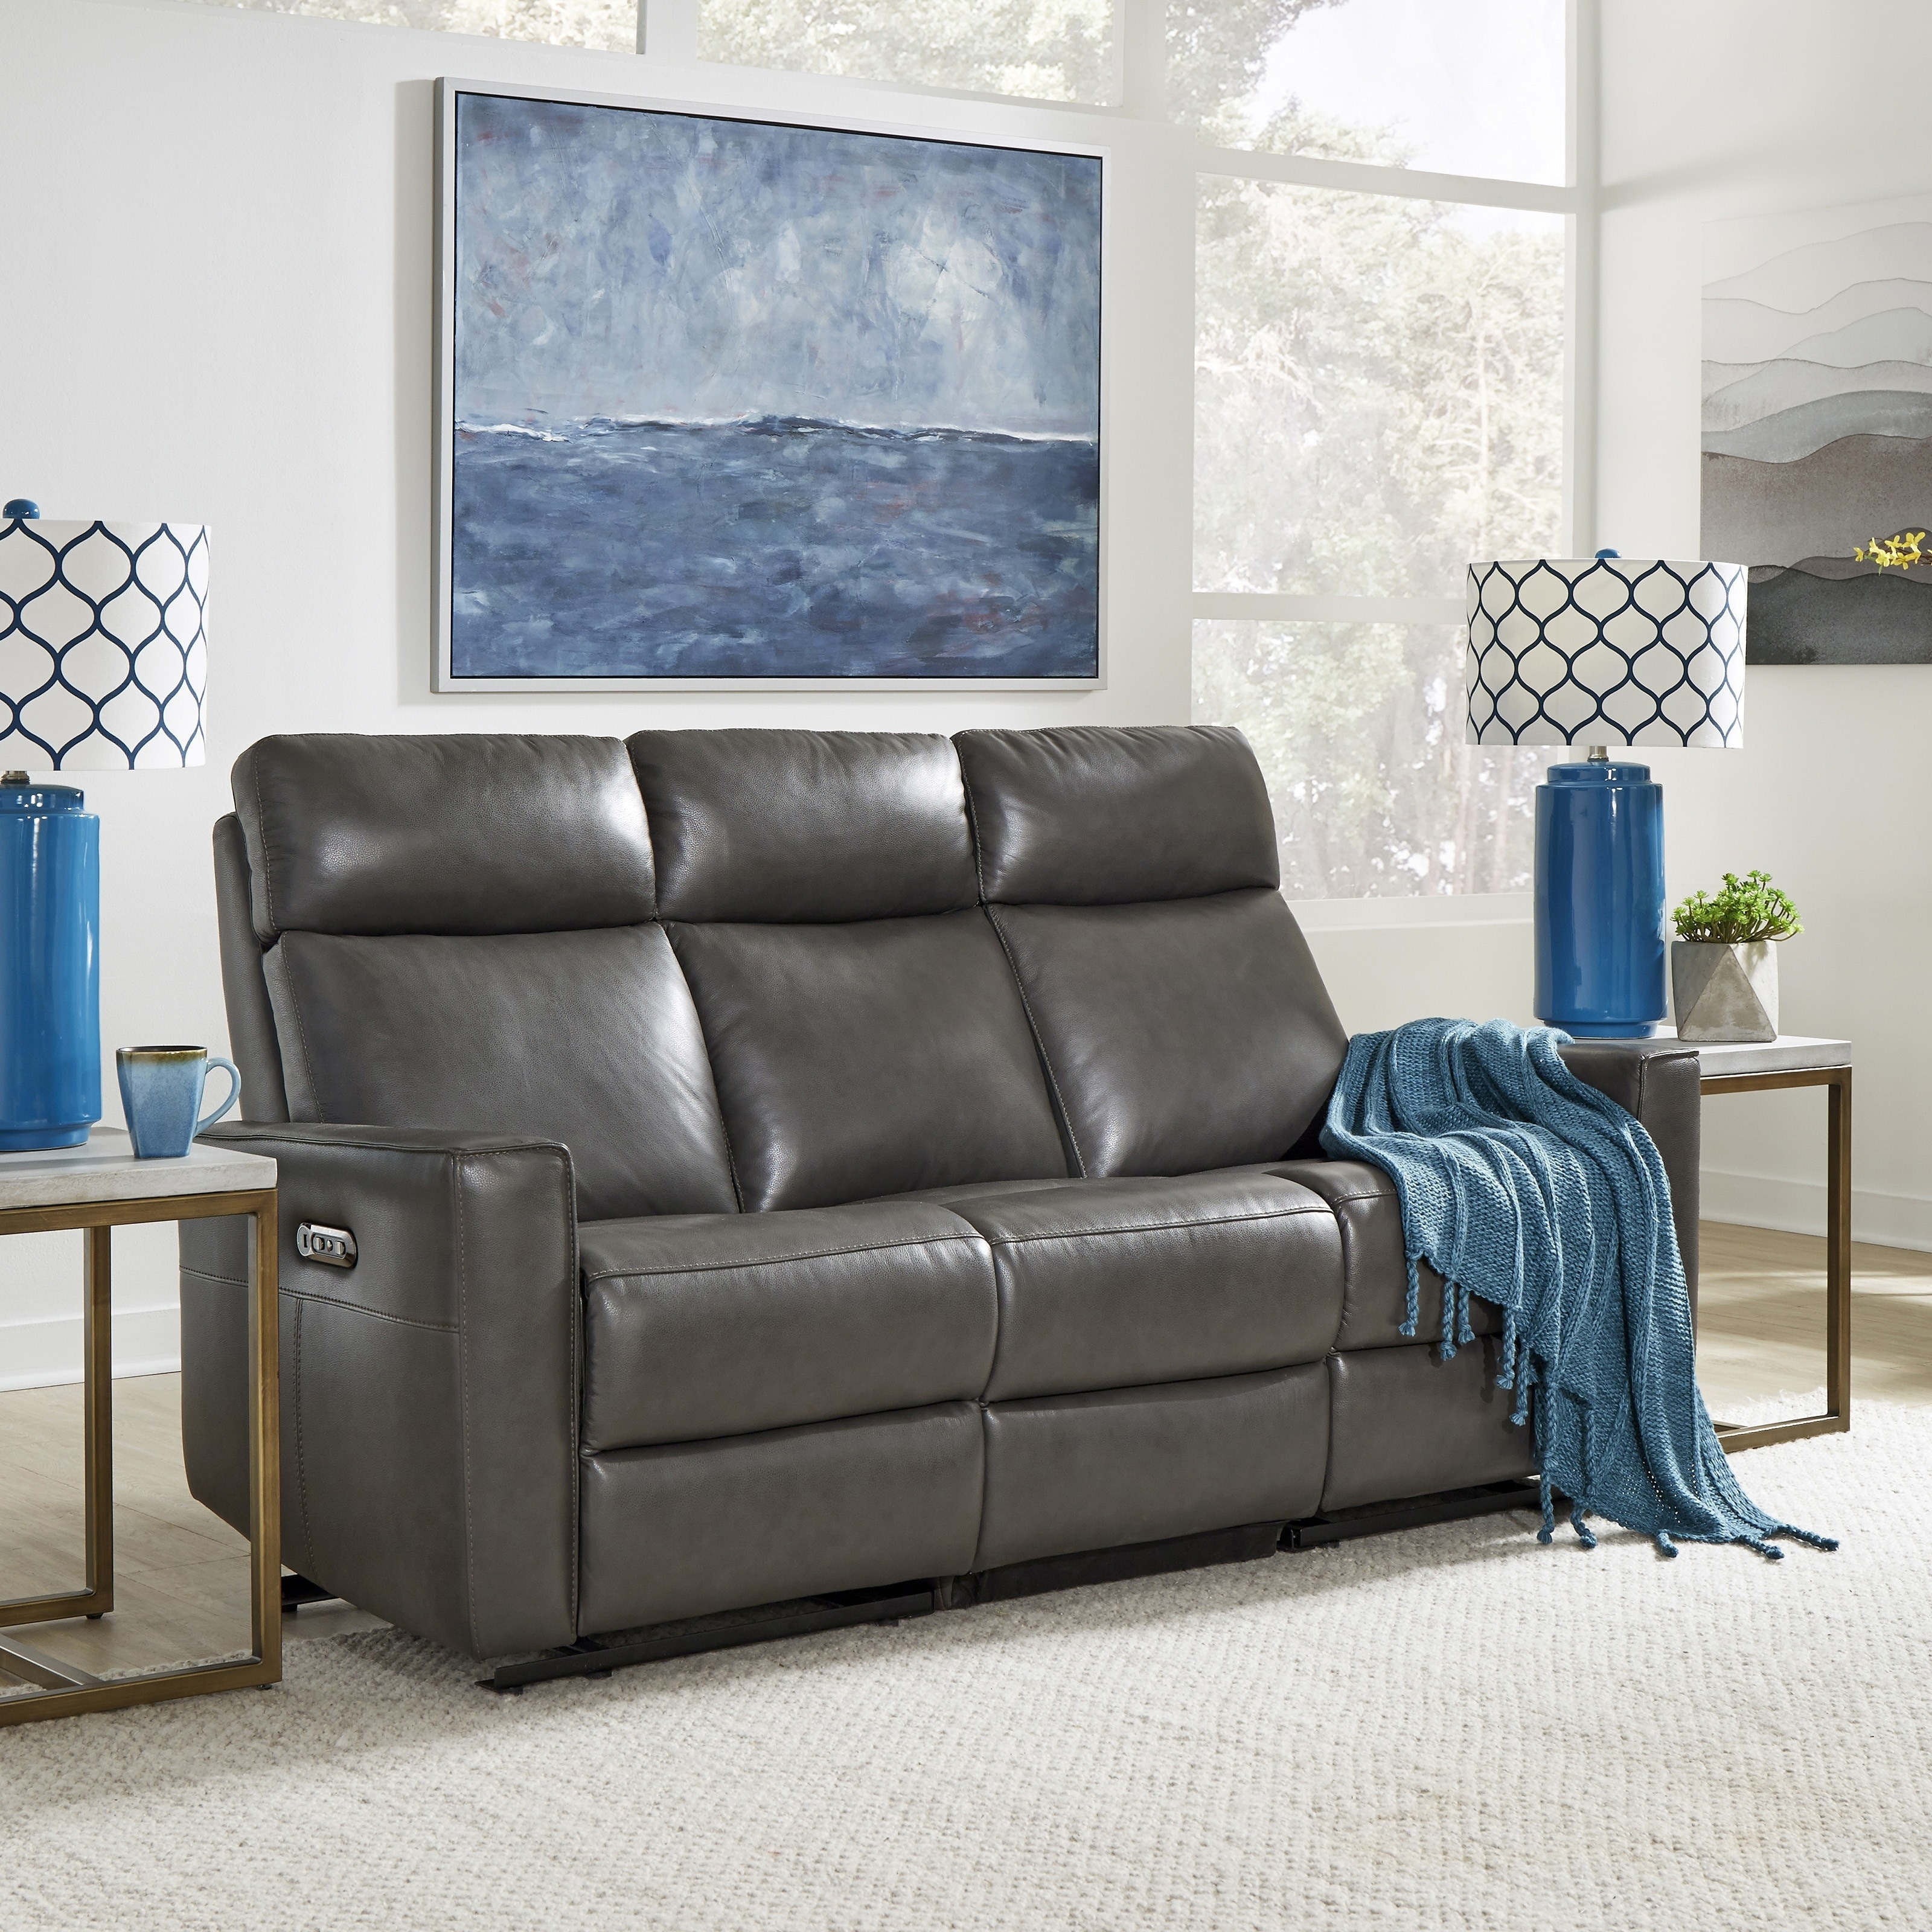 Astounding Home Styles By Flexsteel Nuovo Leather Power Reclining Sofa Ibusinesslaw Wood Chair Design Ideas Ibusinesslaworg